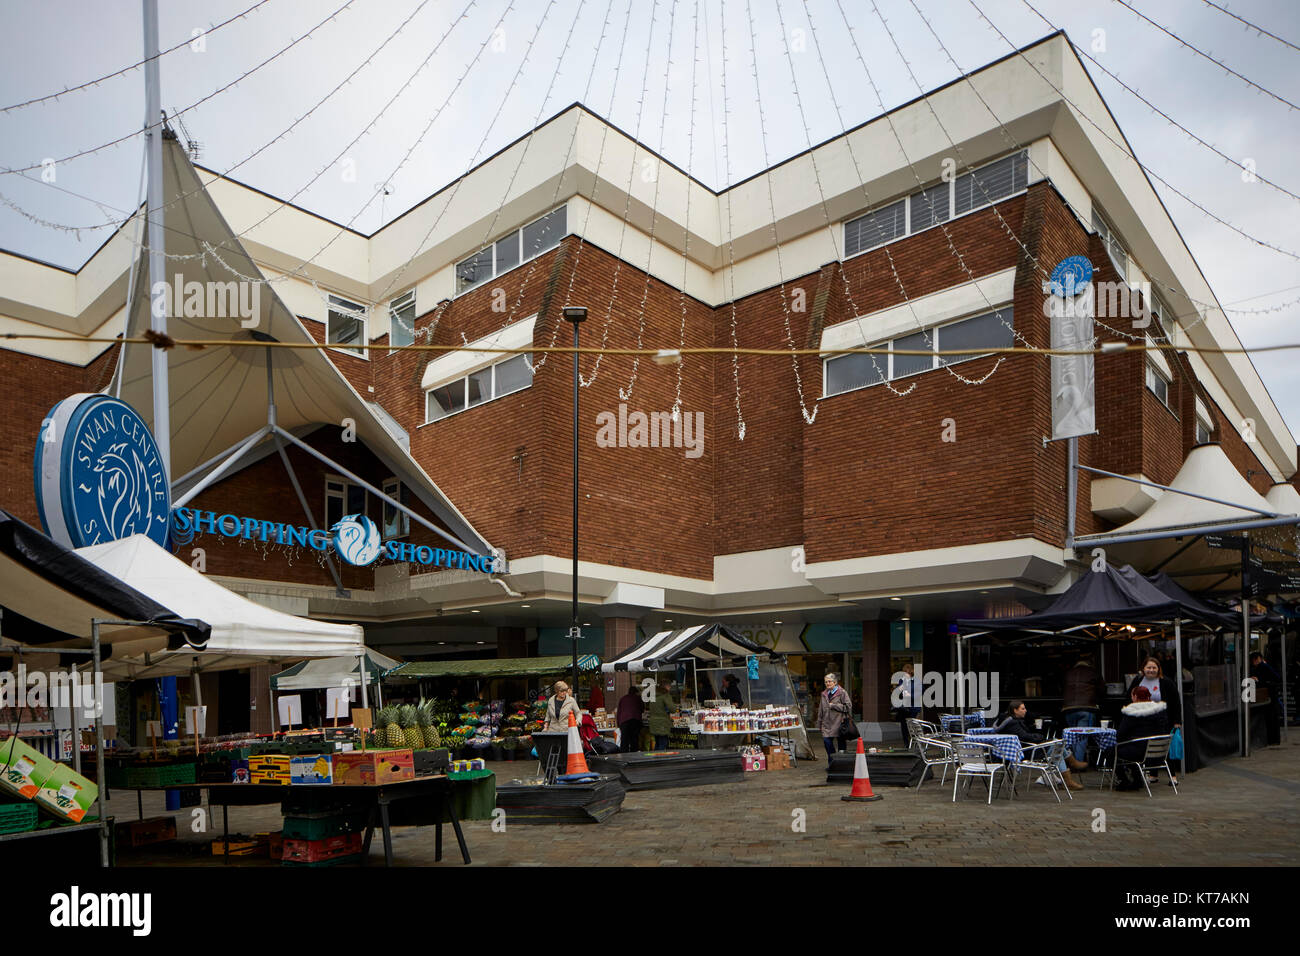 Entrance to Swan Shopping Centre in Kidderminster, Worcestershire, the the heart of the town centre - Stock Image